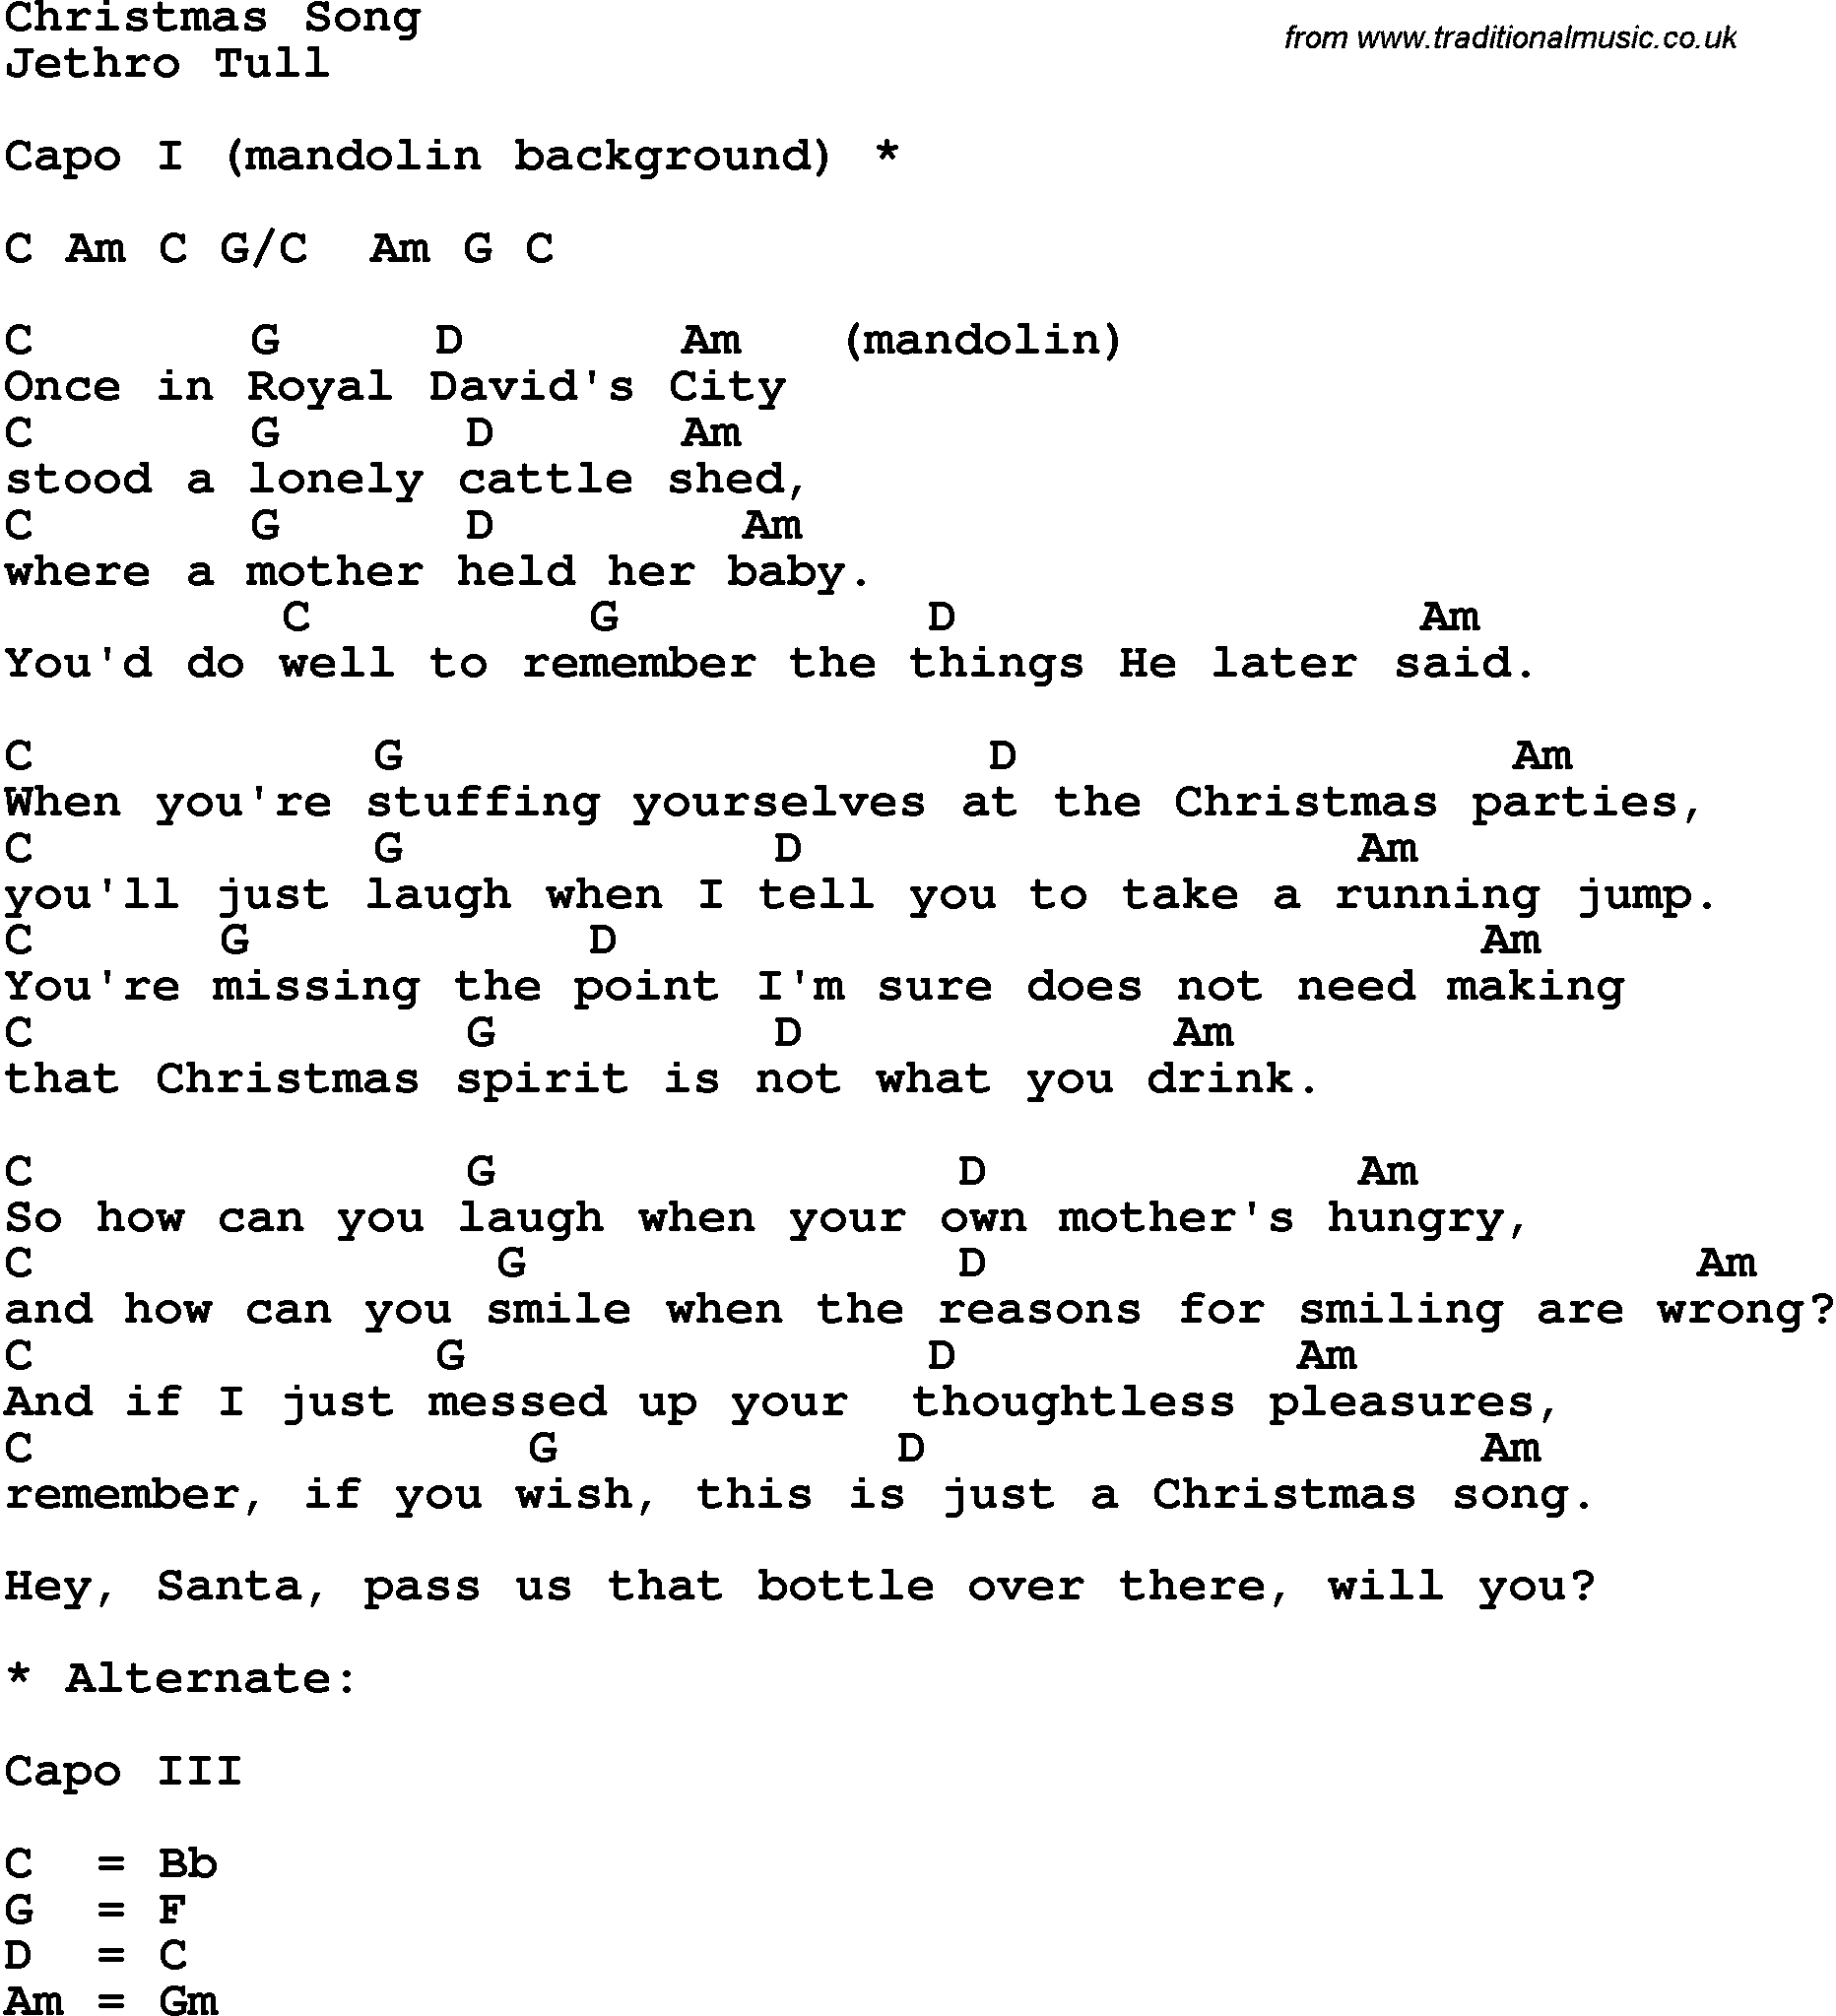 Song lyrics with guitar chords for Christmas Song - Jethro Tull